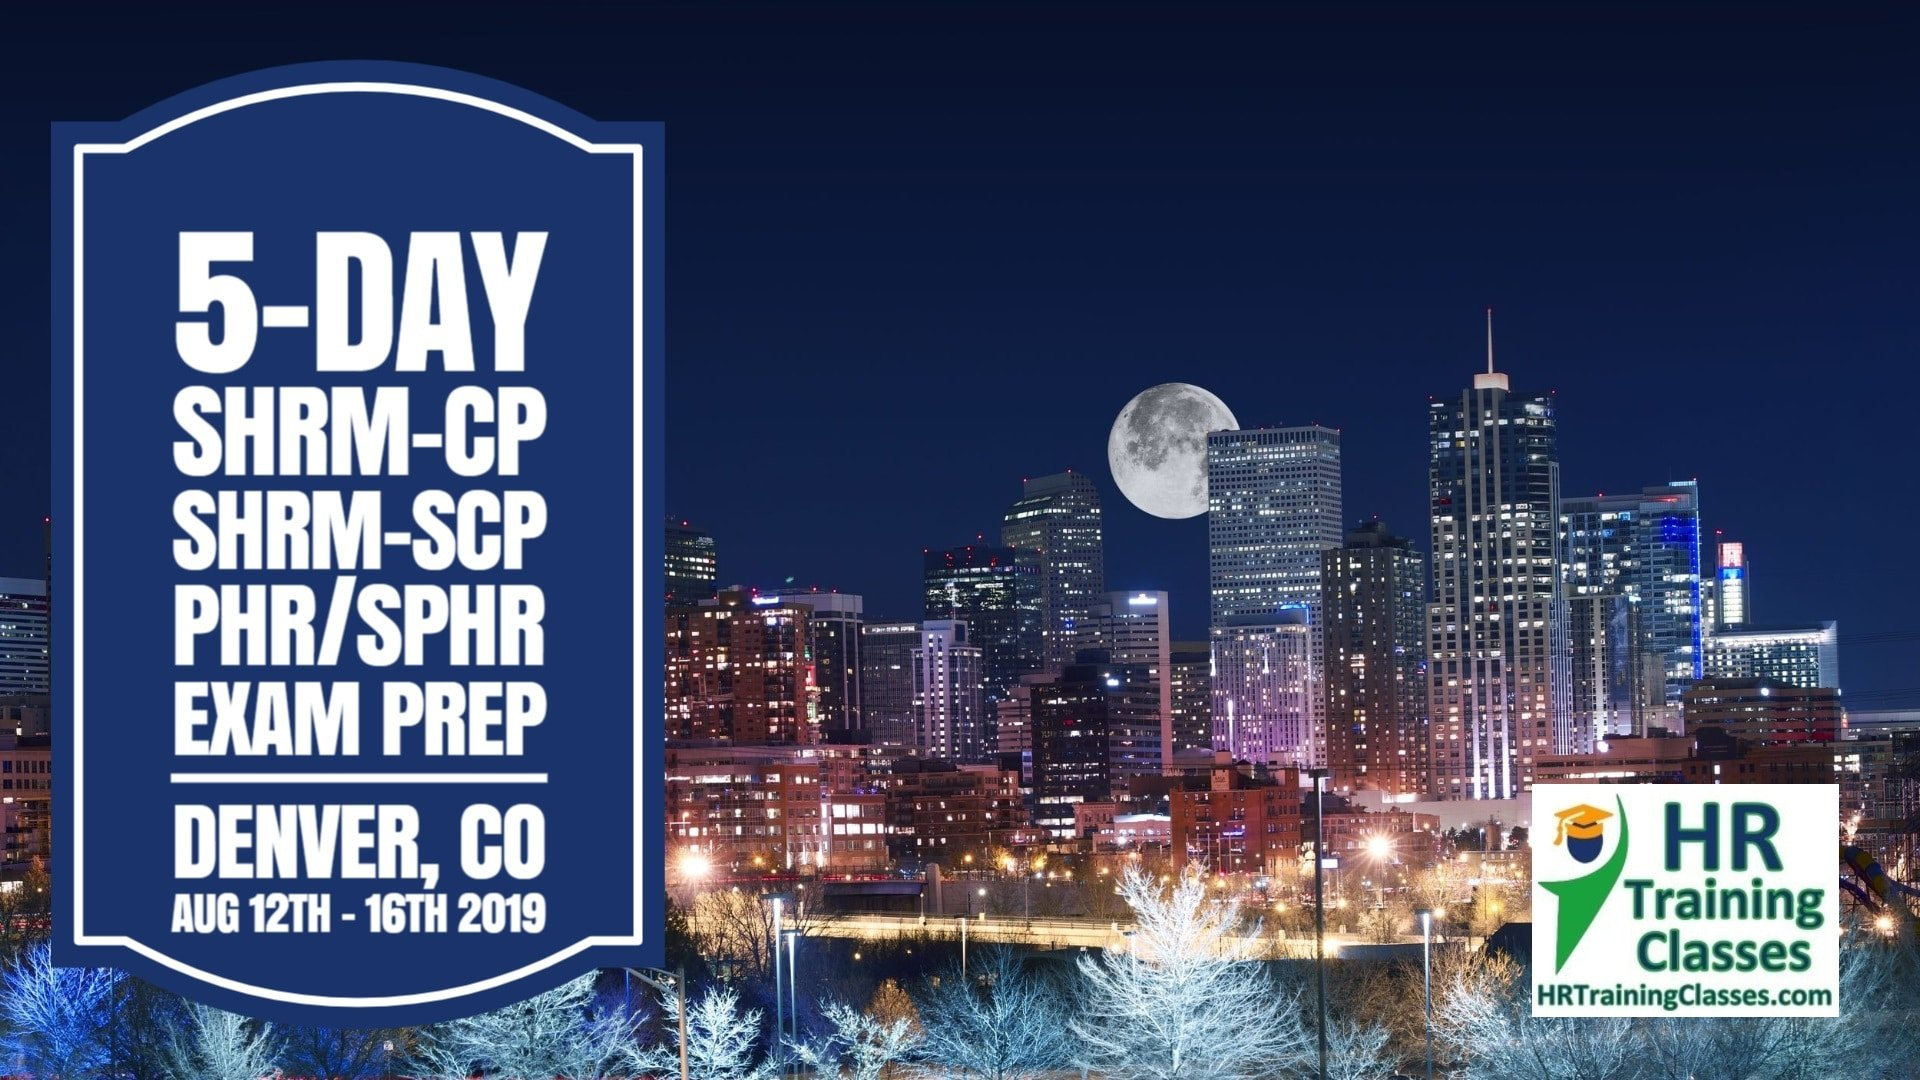 5 Day SHRM-CP, SHRM-SCP, PHR, SPHR Exam Prep Boot Camp in Denver, CO (Starts 8/12/2019)